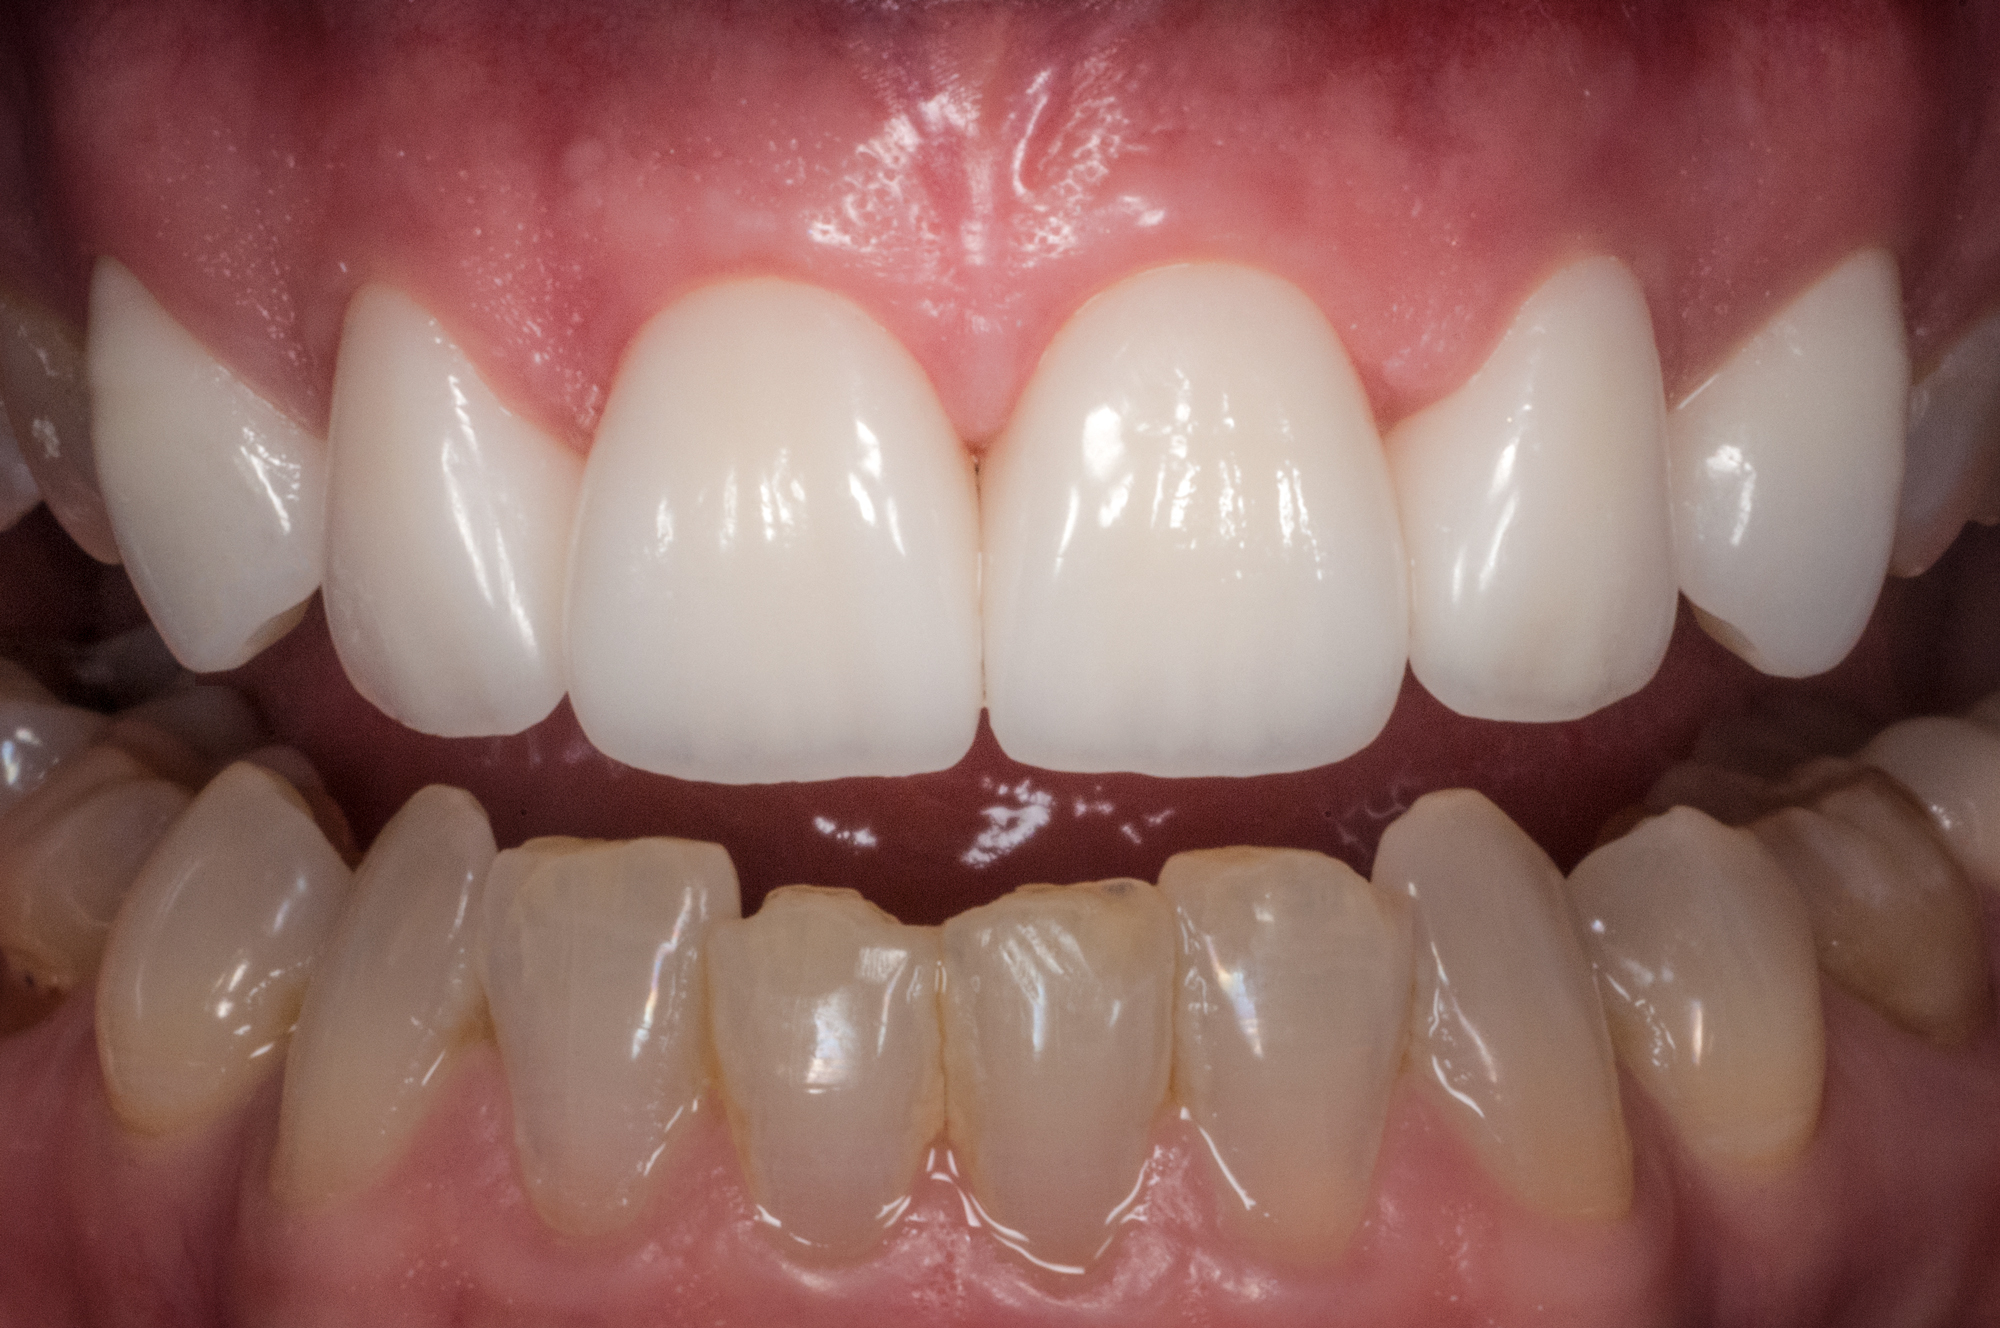 6 Upper front teeth by Ron Winter of Fabulous Teeth @ Seaside Dental Laboratory & Clinic Takapuna Auckland New Zealand .jpg